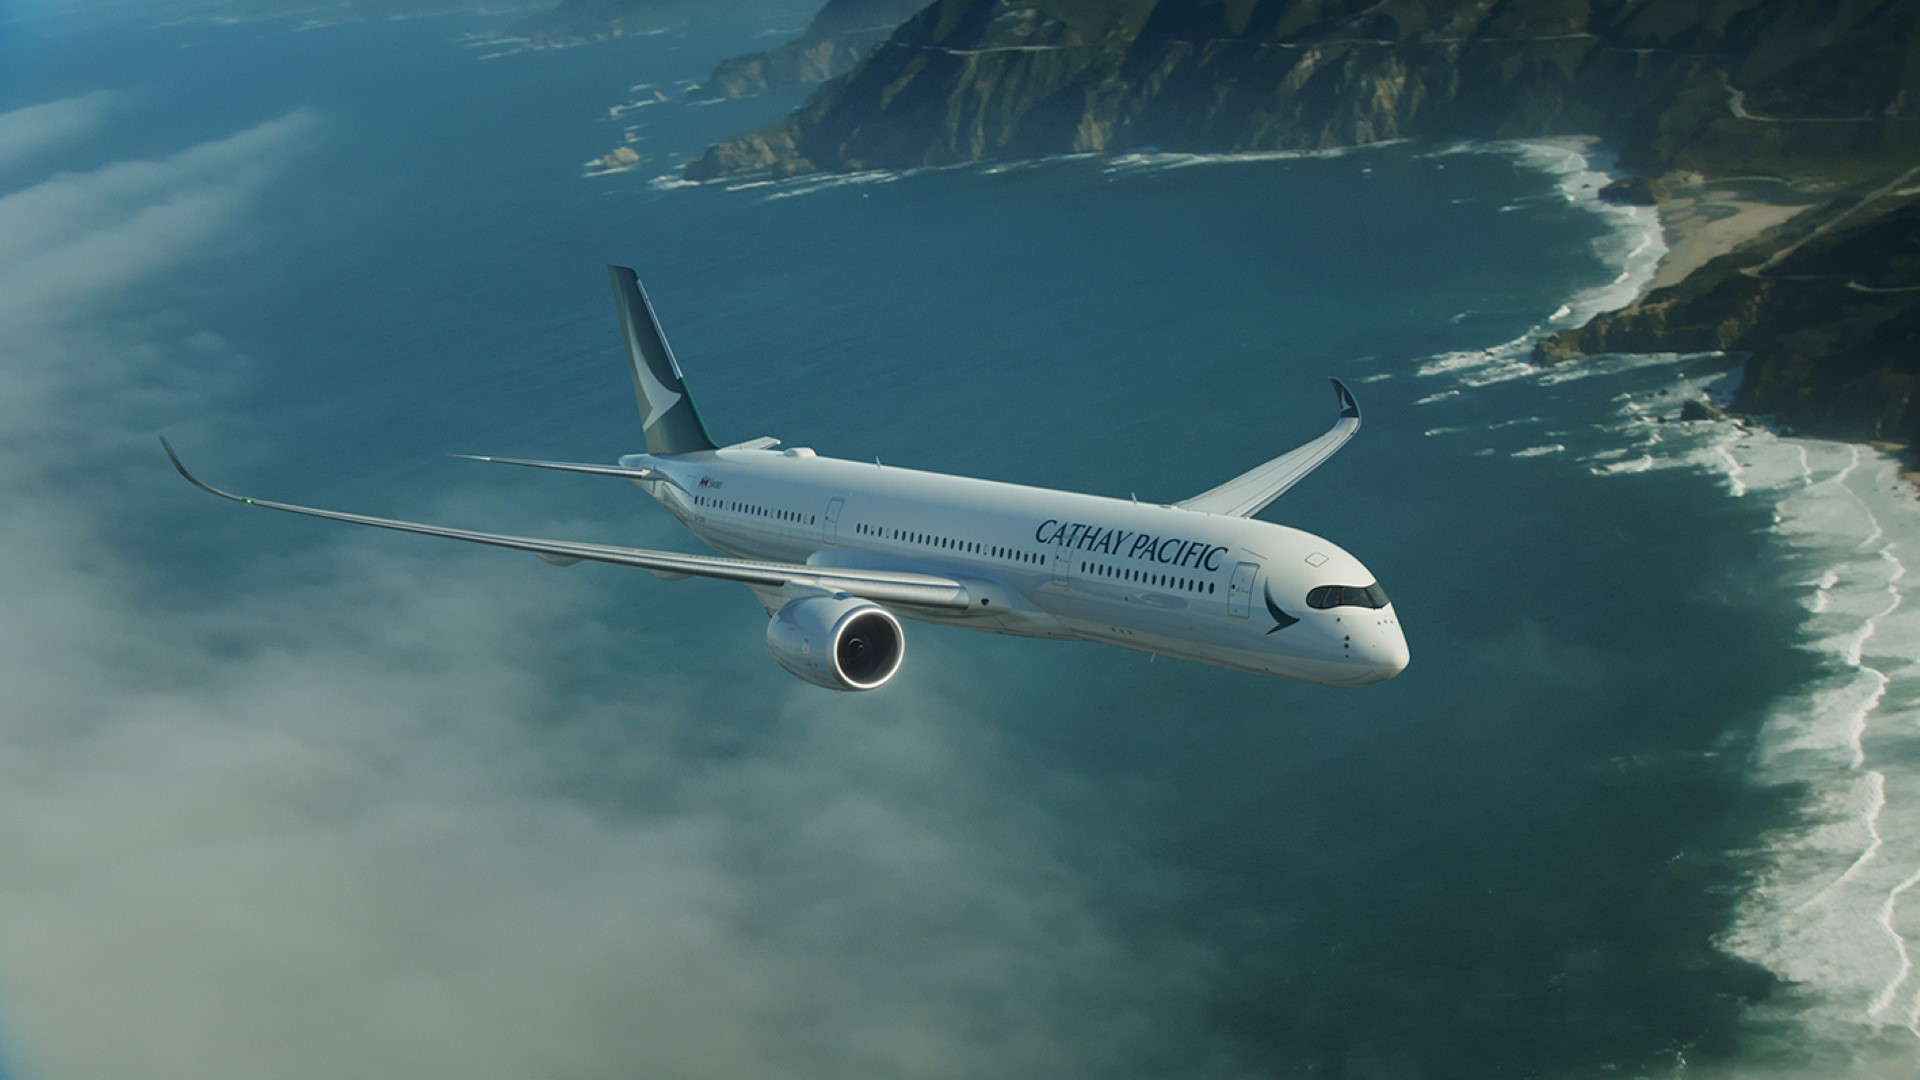 cathay-pacific-Large.jpg